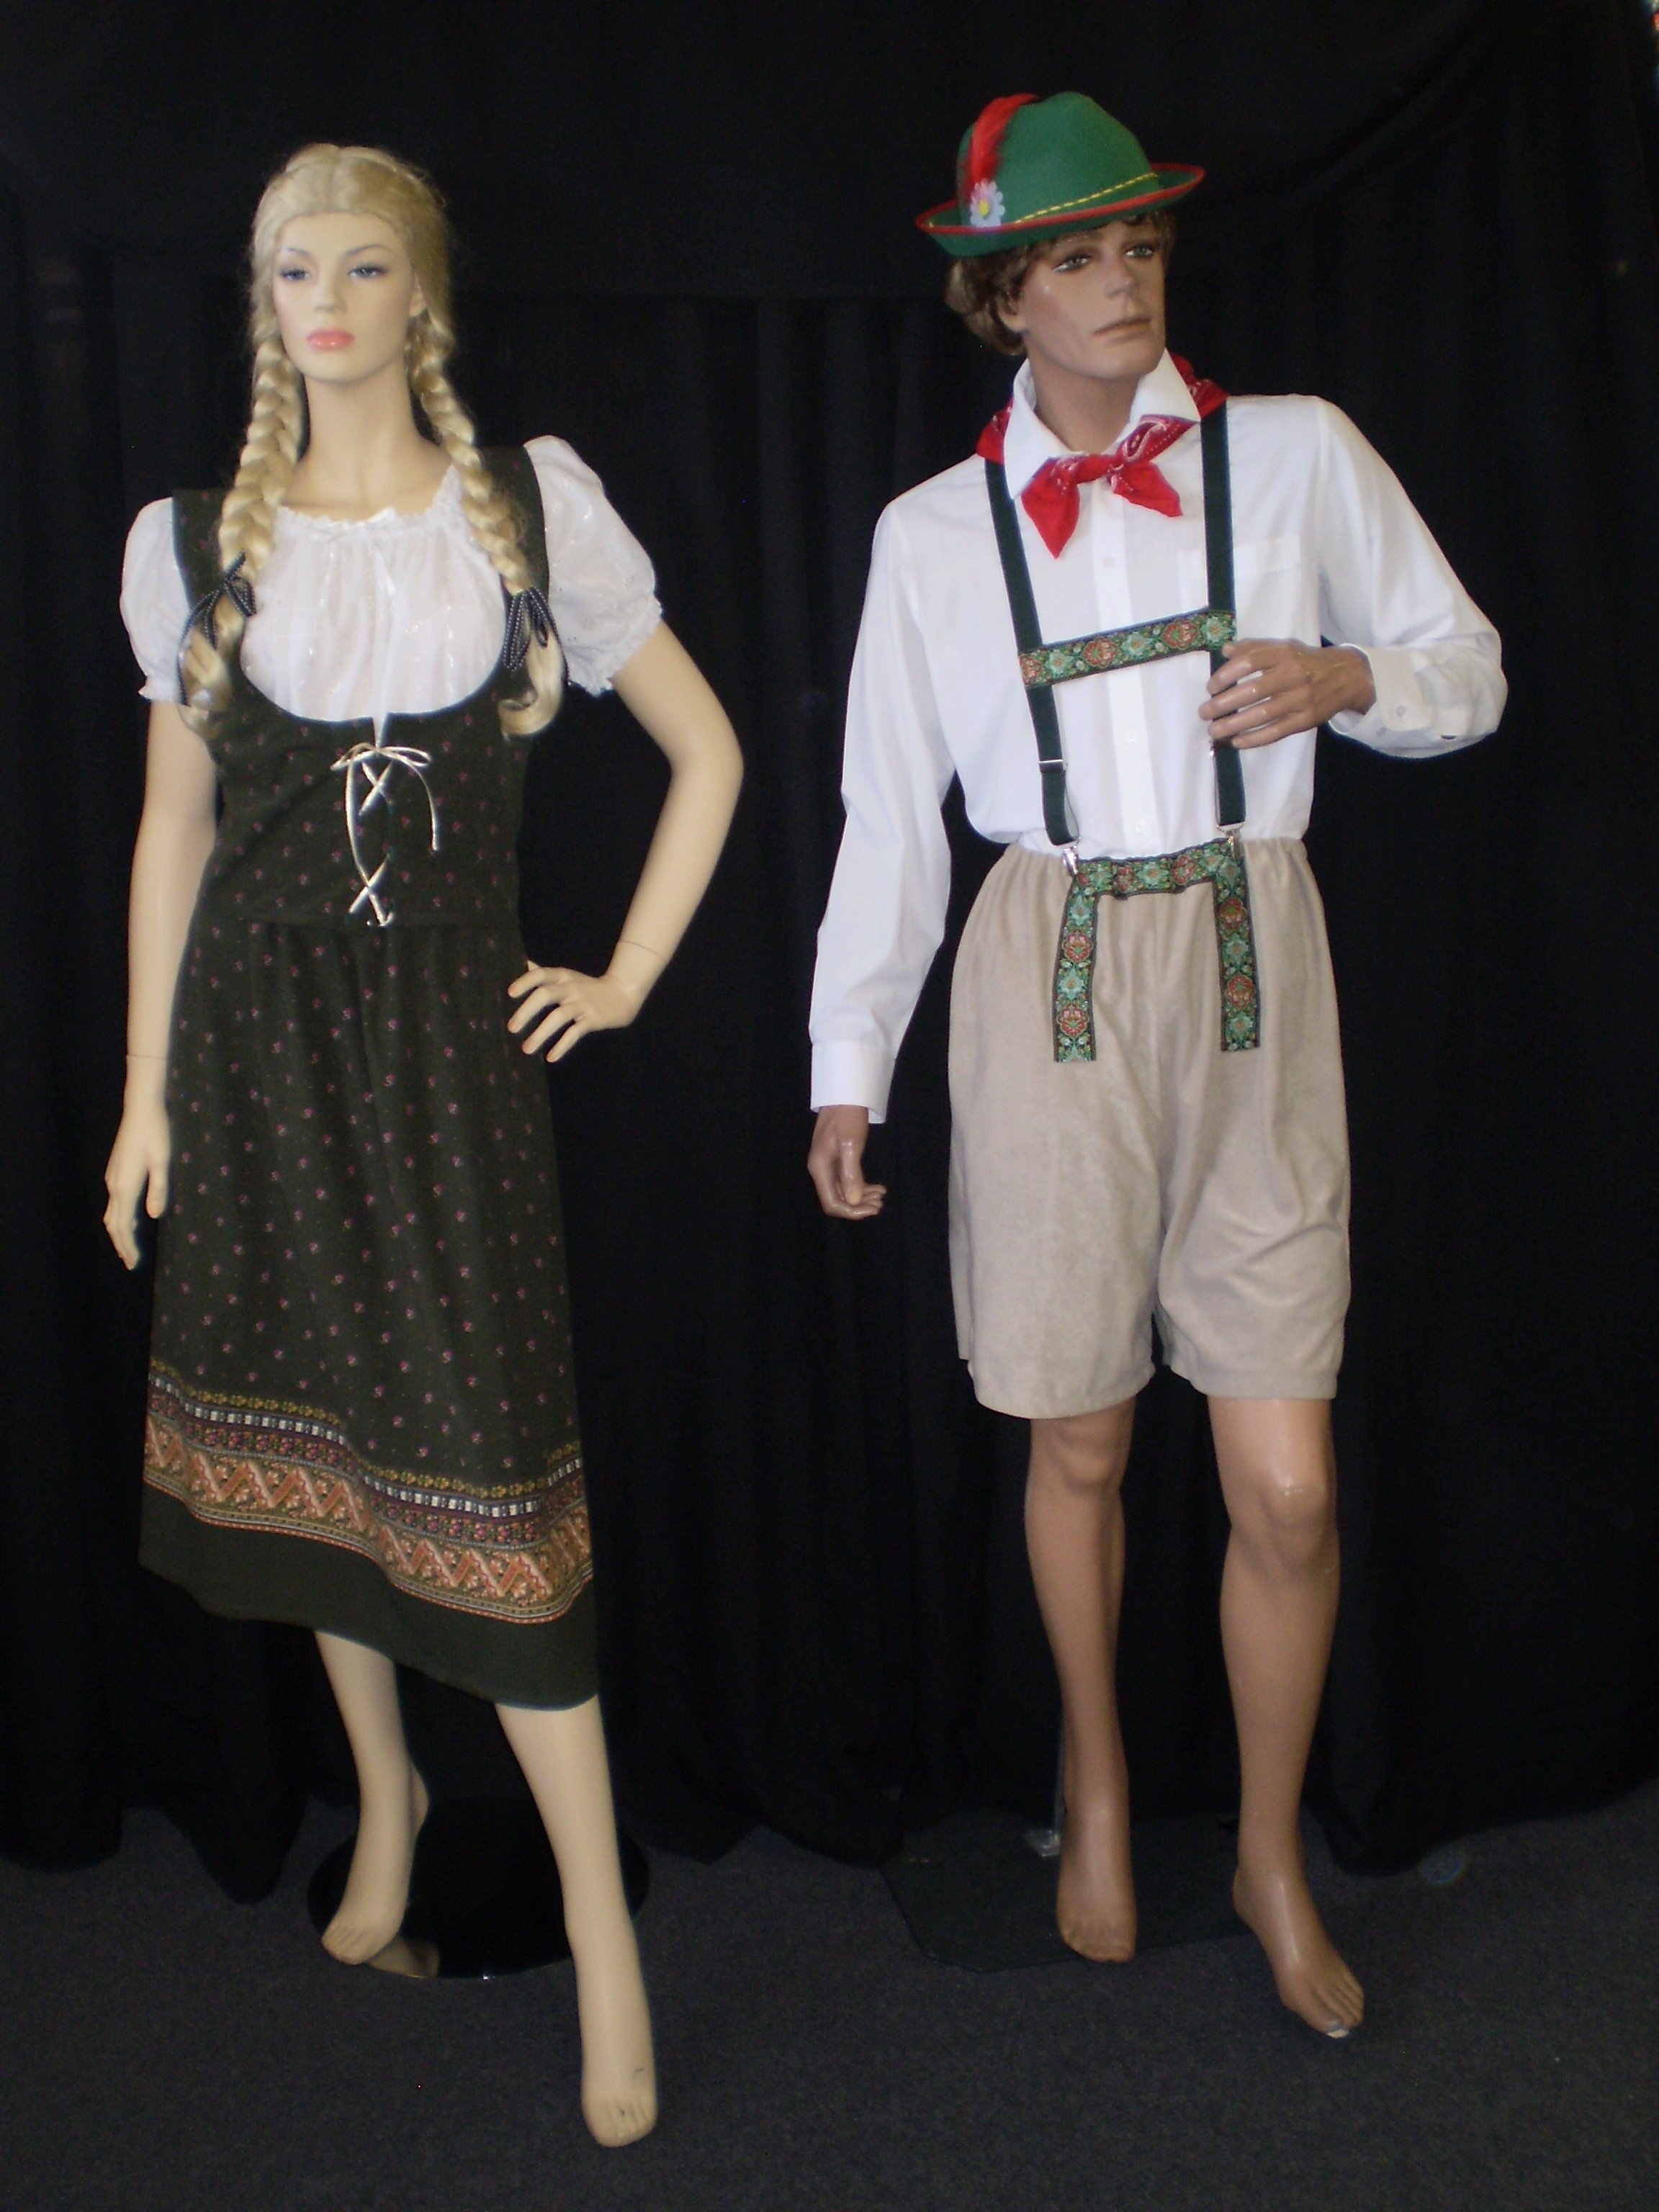 10 Most Recommended Sound Of Music Costume Ideas sound of music costumes hire or buy acting the part try on in 2021